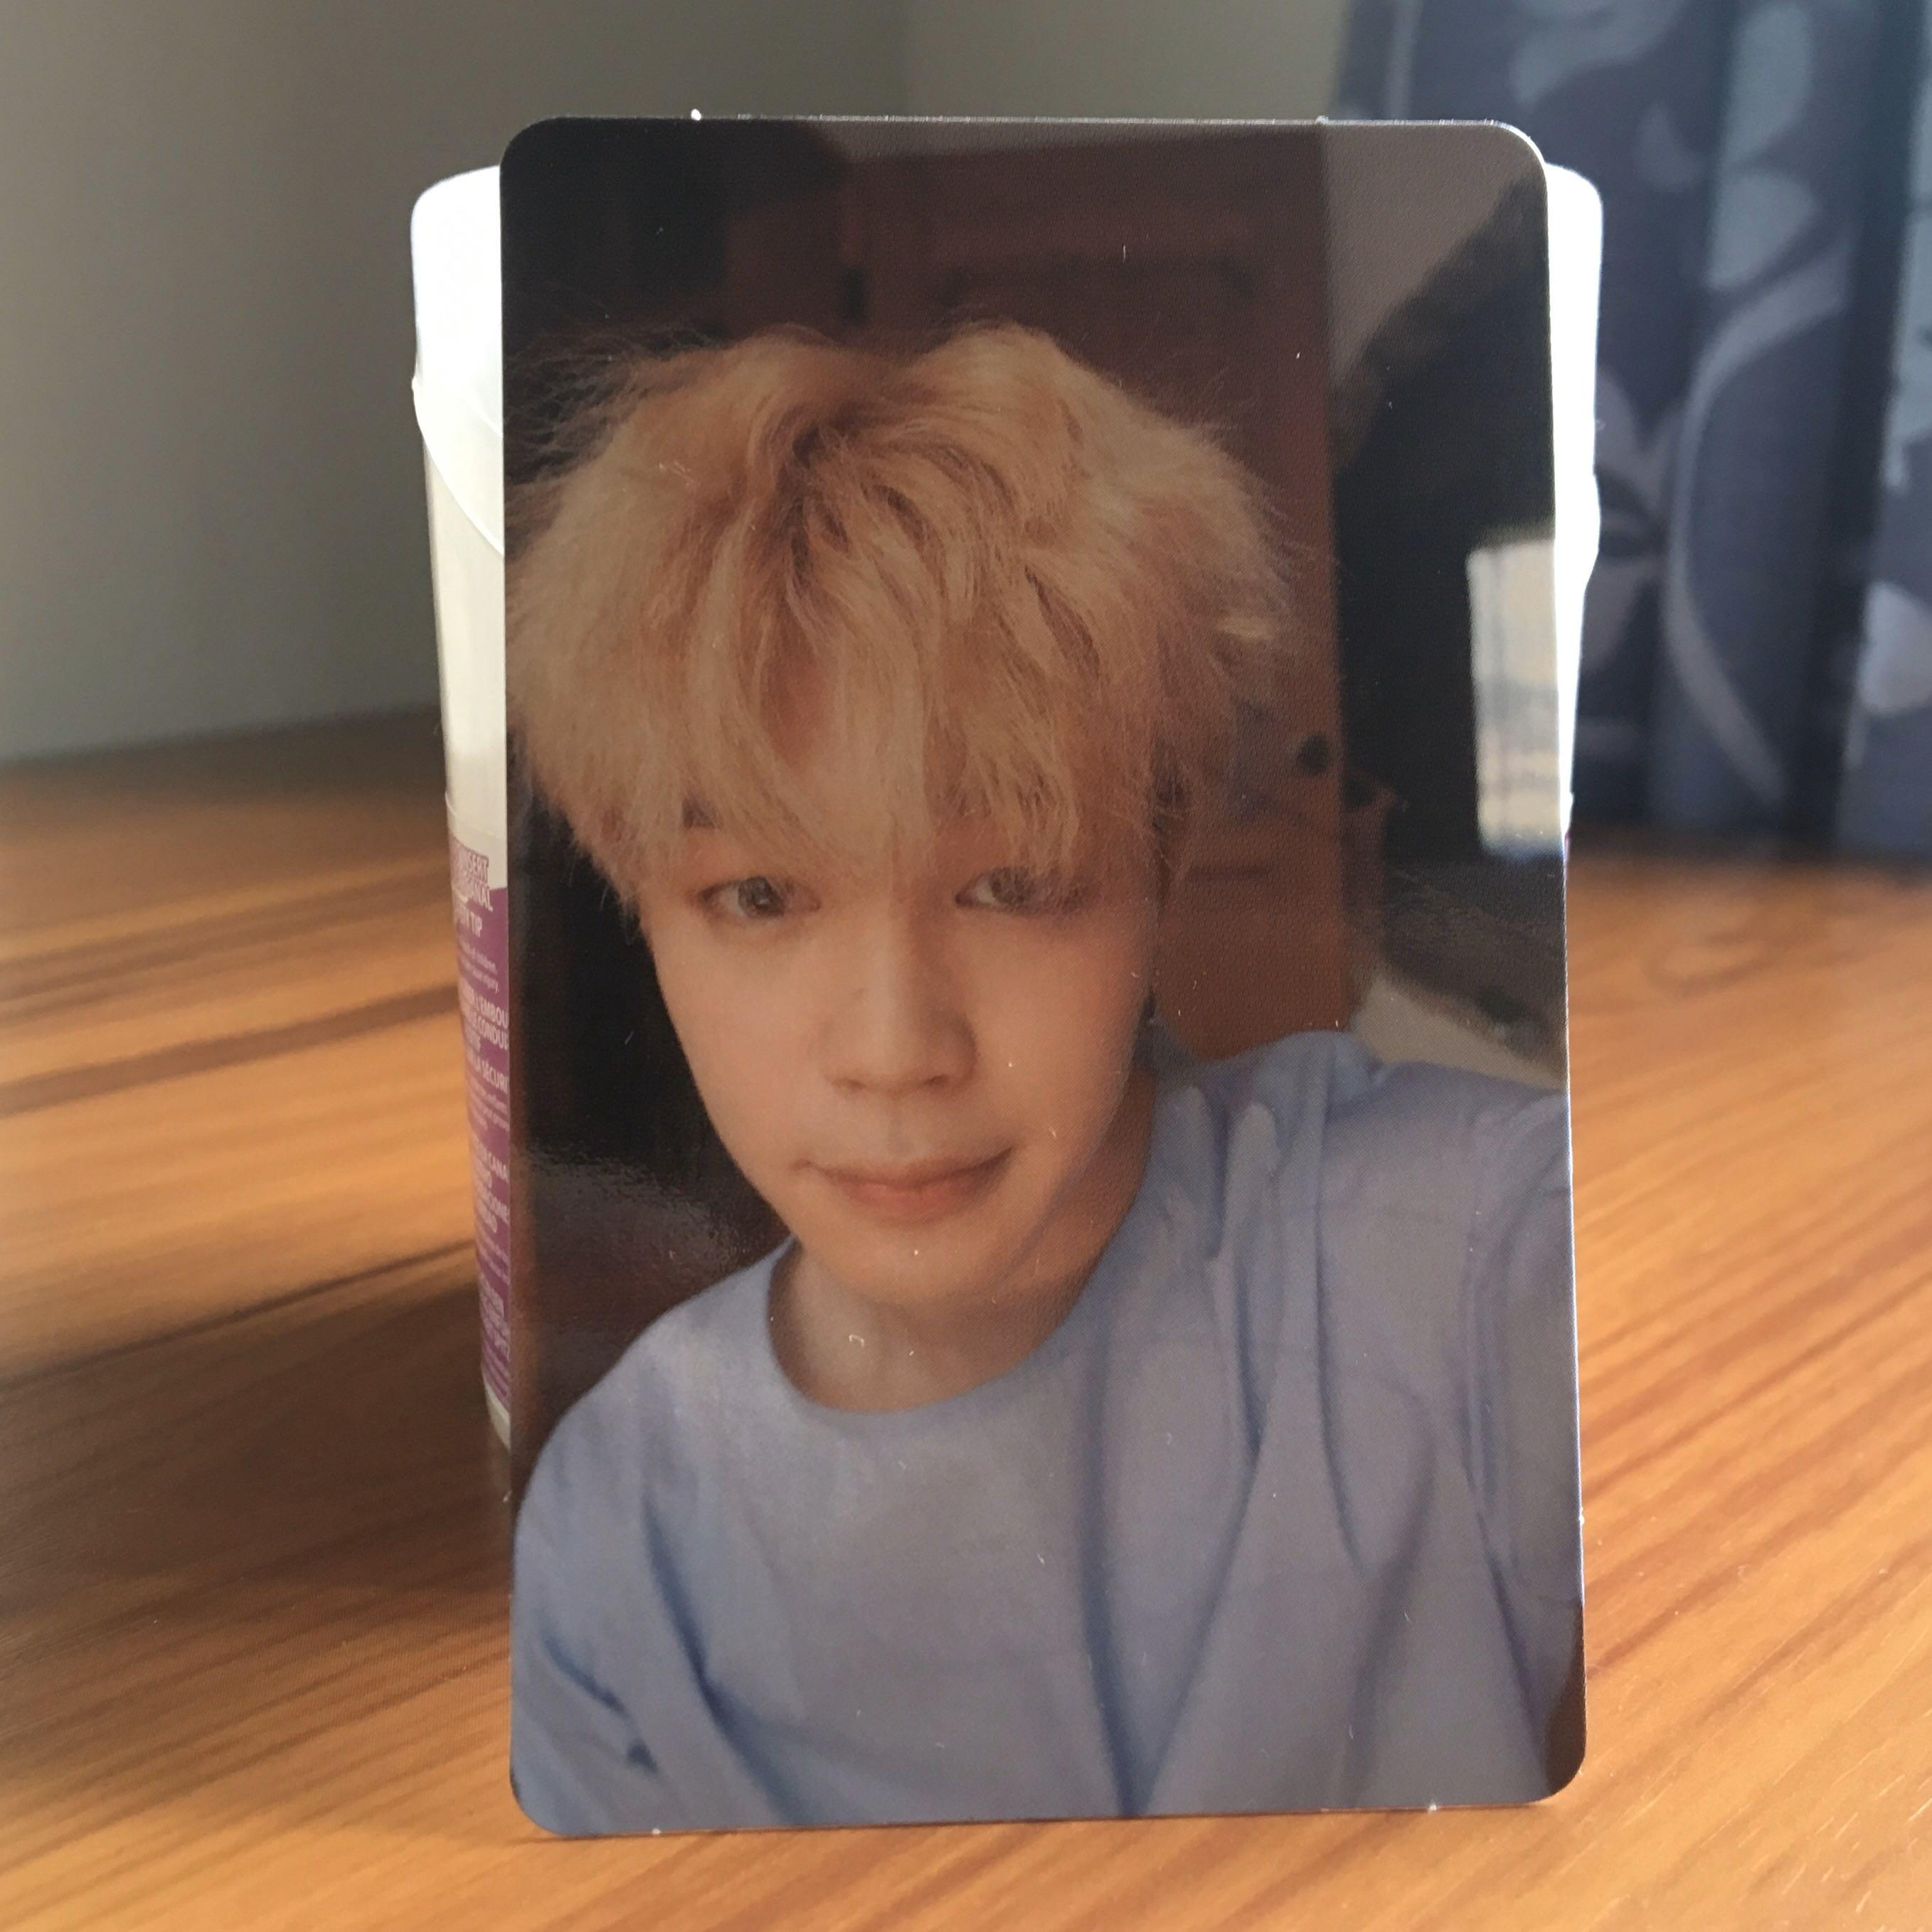 sale bts jimin love yourself her l version photocard 1572749222 711e6b46 progressive